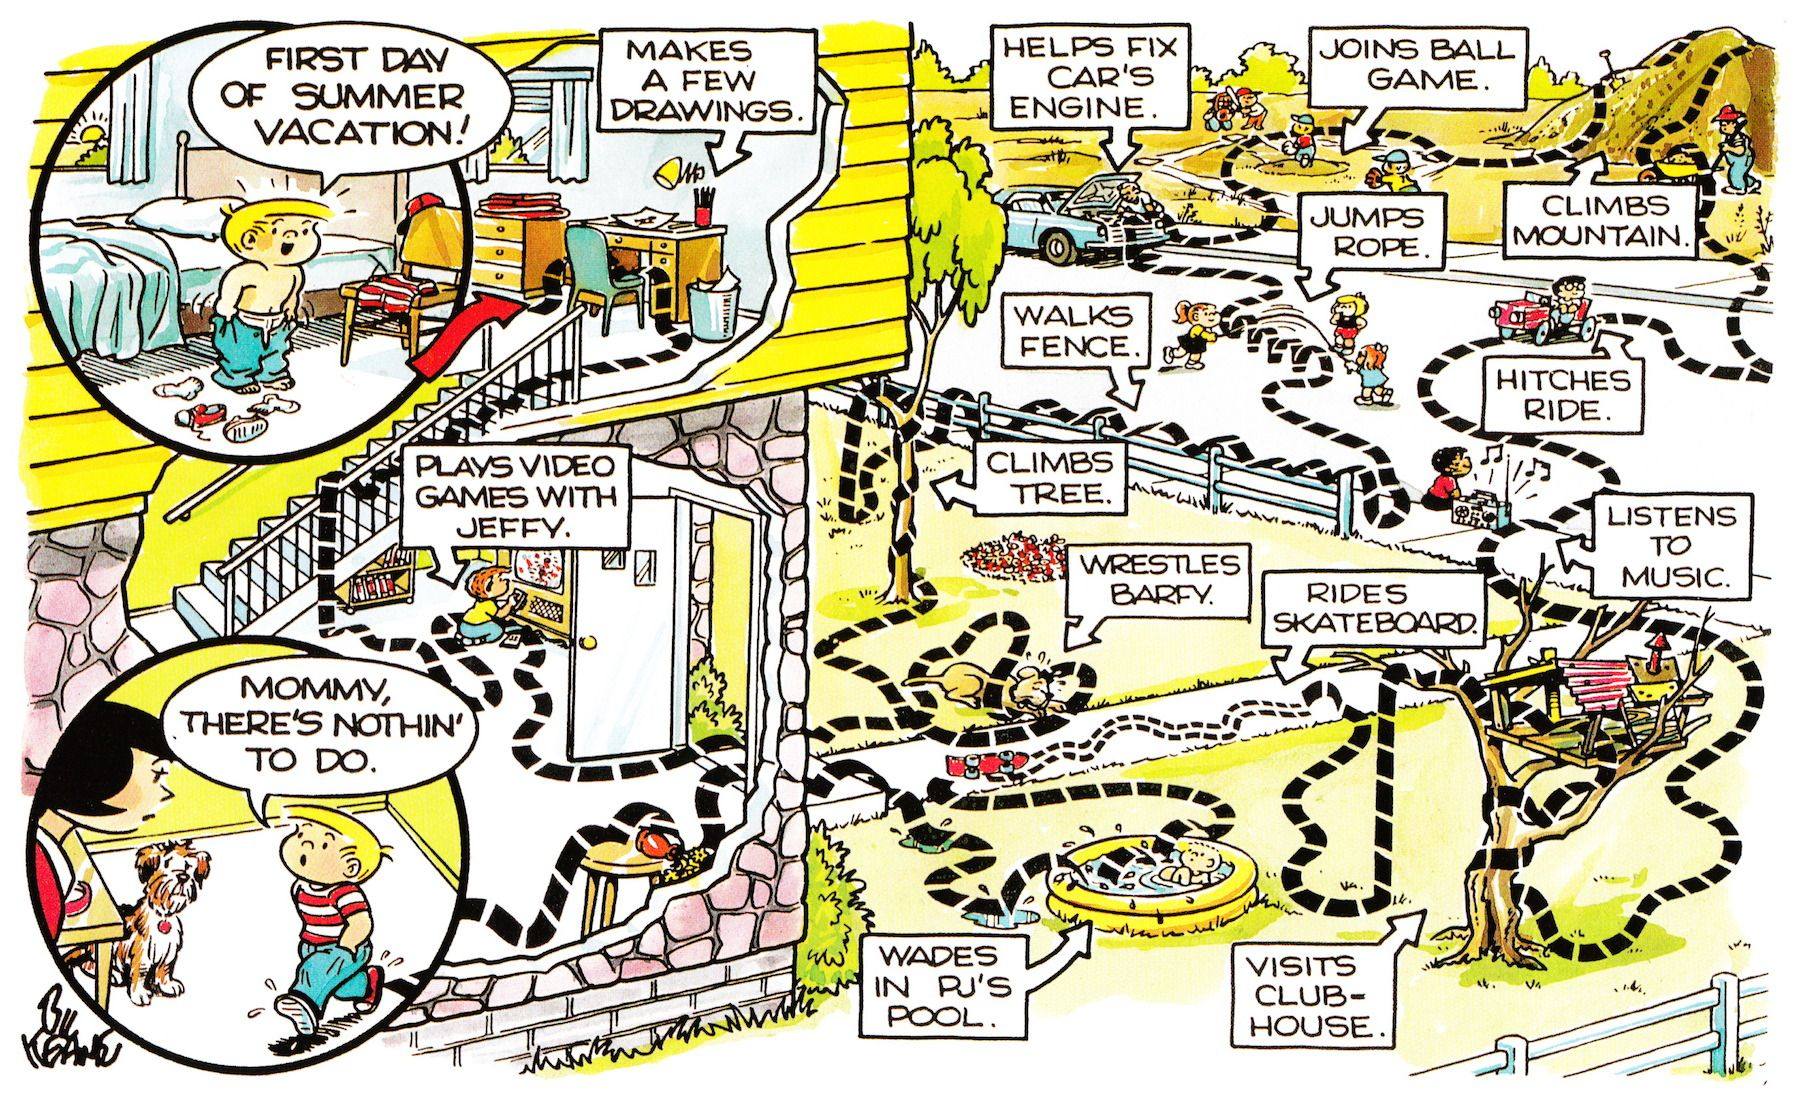 Pin by Keith Churchill on Research | Family circus cartoon ... Family Circus Maps on western town map, greater vancouver map, new amsterdam map, city of new orleans map, unr parking map, ancient persia map, valley of kings map, city limits map, st thomas map, circuit map, cowboy map, colosseum map, red map, storybook map, colonial house map, princess map, usa travel map, ancient world map, magic map, encore map,